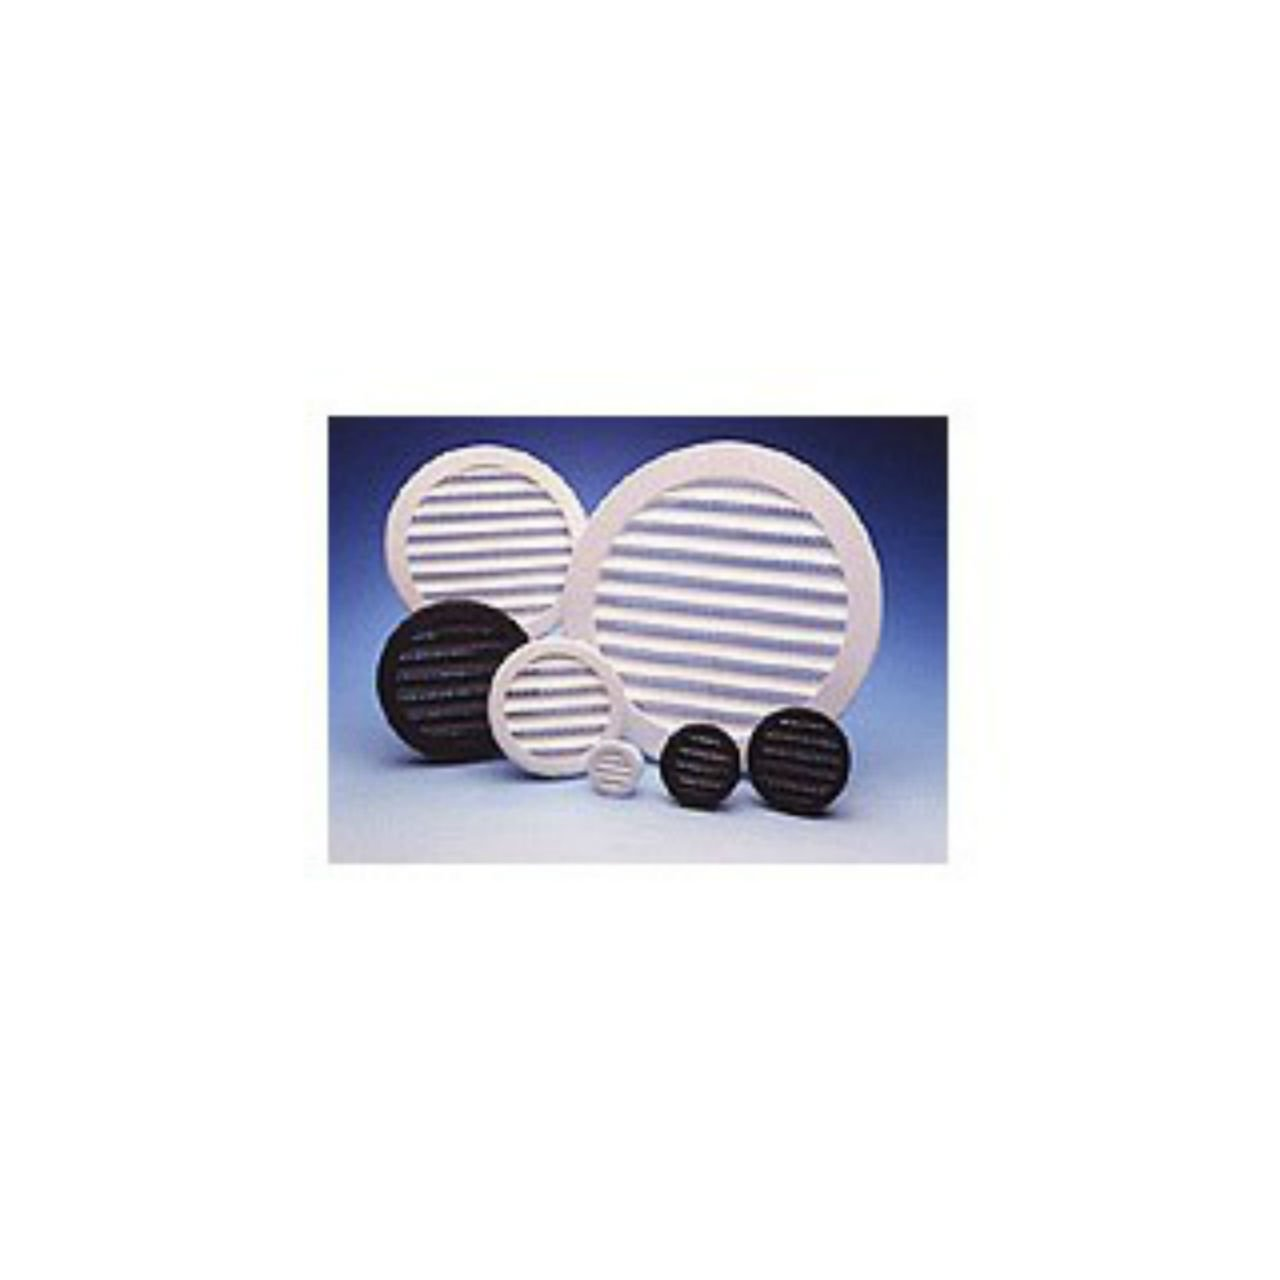 """Maurice Franklin Louver-3"""" Round White Polypropylene Plastic Louver with Insect Screen System (Priced Per Bag of 4). Item #3"""" PLW-100"""